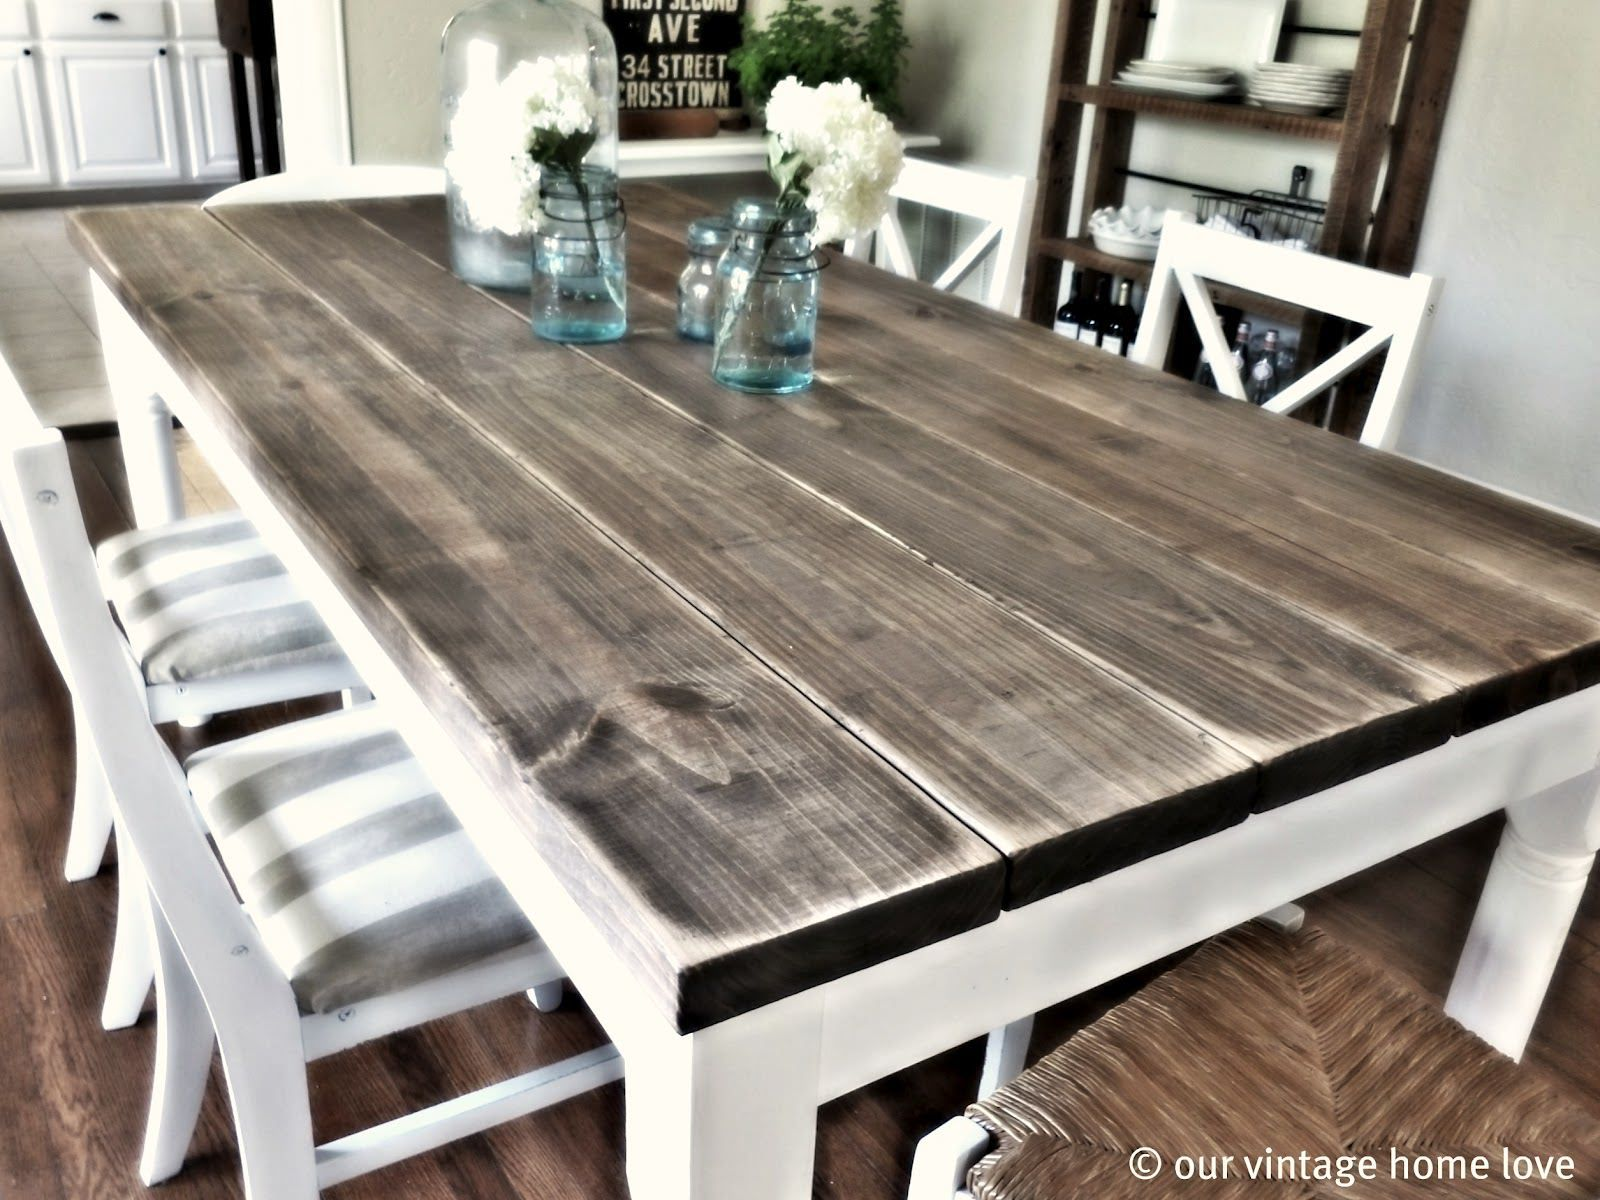 Kitchen Table Cabinets Organizer Pin By Brett Schutt On Tables Pinterest Dining Room Diy Lovely Wood With 2x8 Boards 4